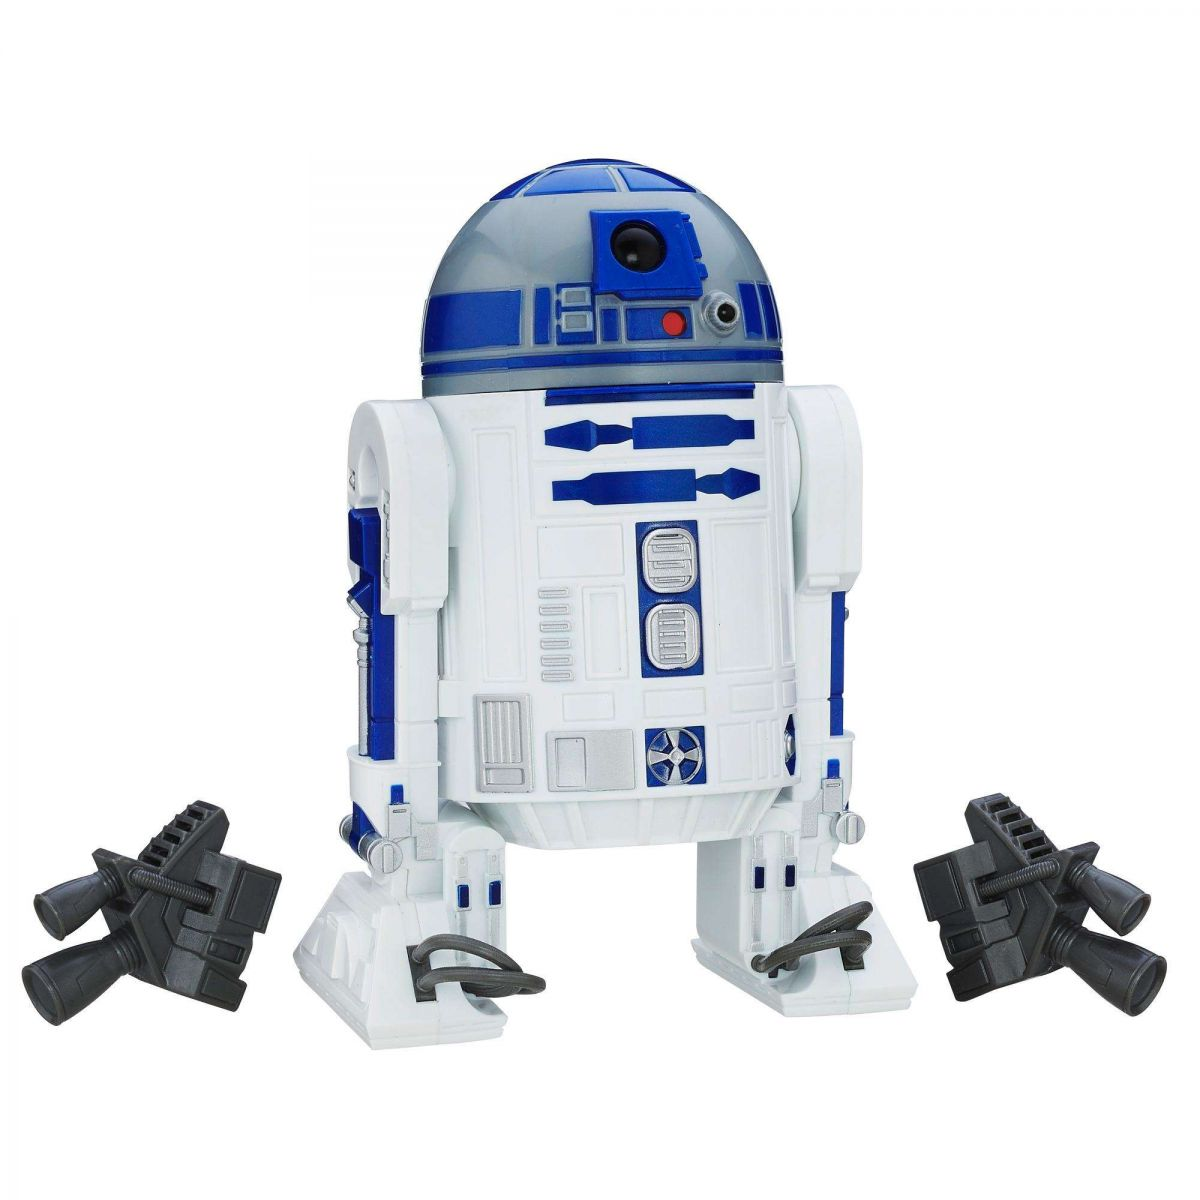 R2-D2 - Star Wars The Force Awakens - Hasbro